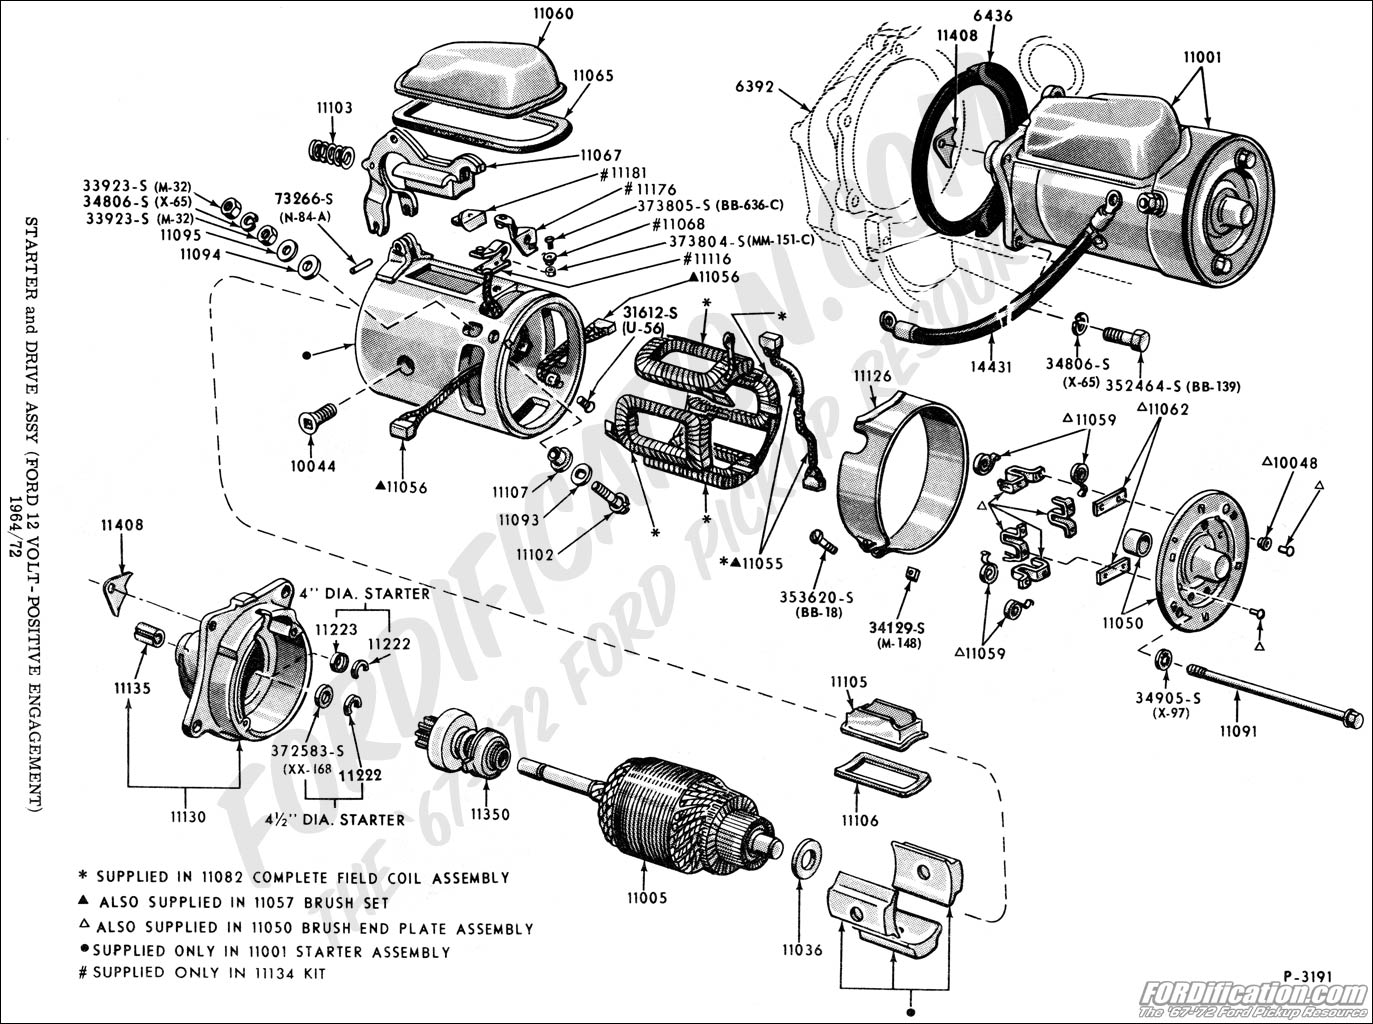 starting 2014 ford edge wiring diagram with Schematics I on 2000 Civic Alternator Wiring Diagram additionally Schematics i likewise 91 Dodge Dakota 5 2 Fuel Pump Wiring Diagram further Injection Pump My 97 Leaking Oil Like Sob 268261 together with